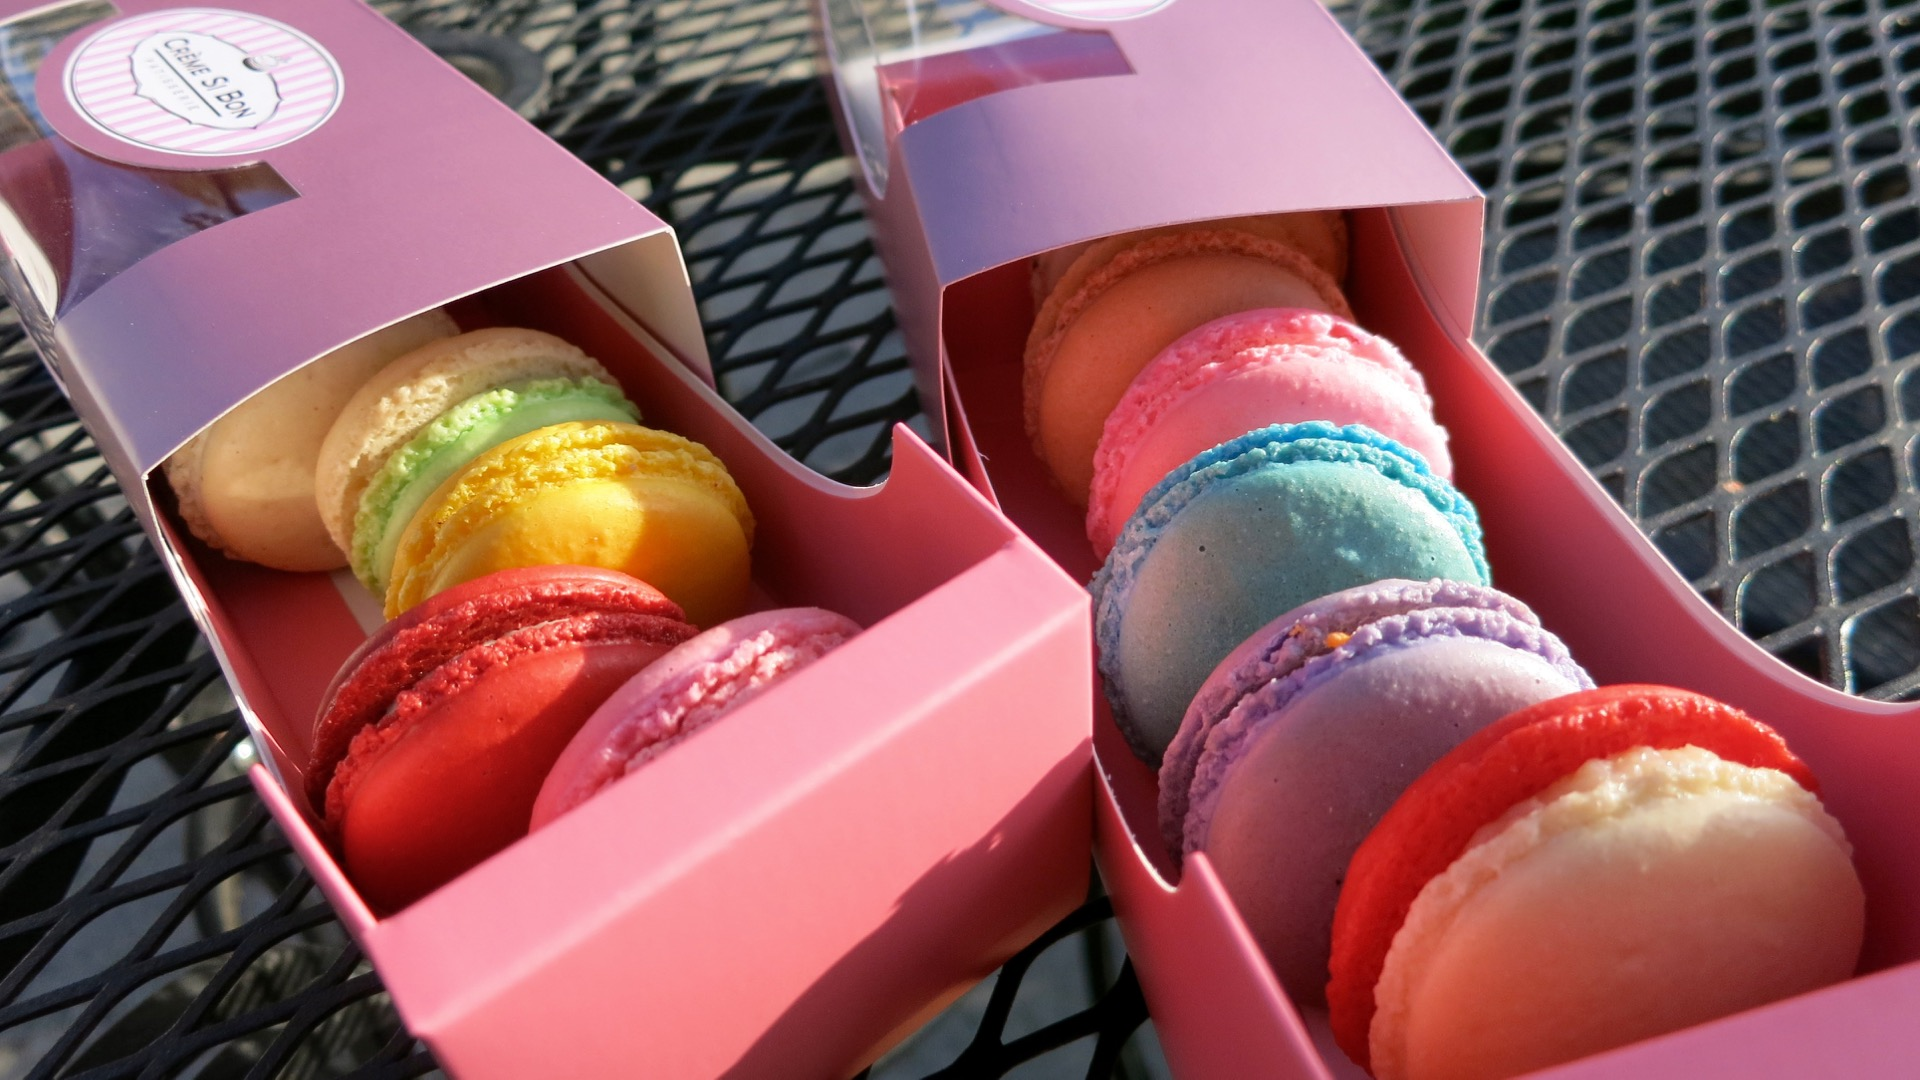 Macarons are pretty in pink boxes from Creme Si Bon.